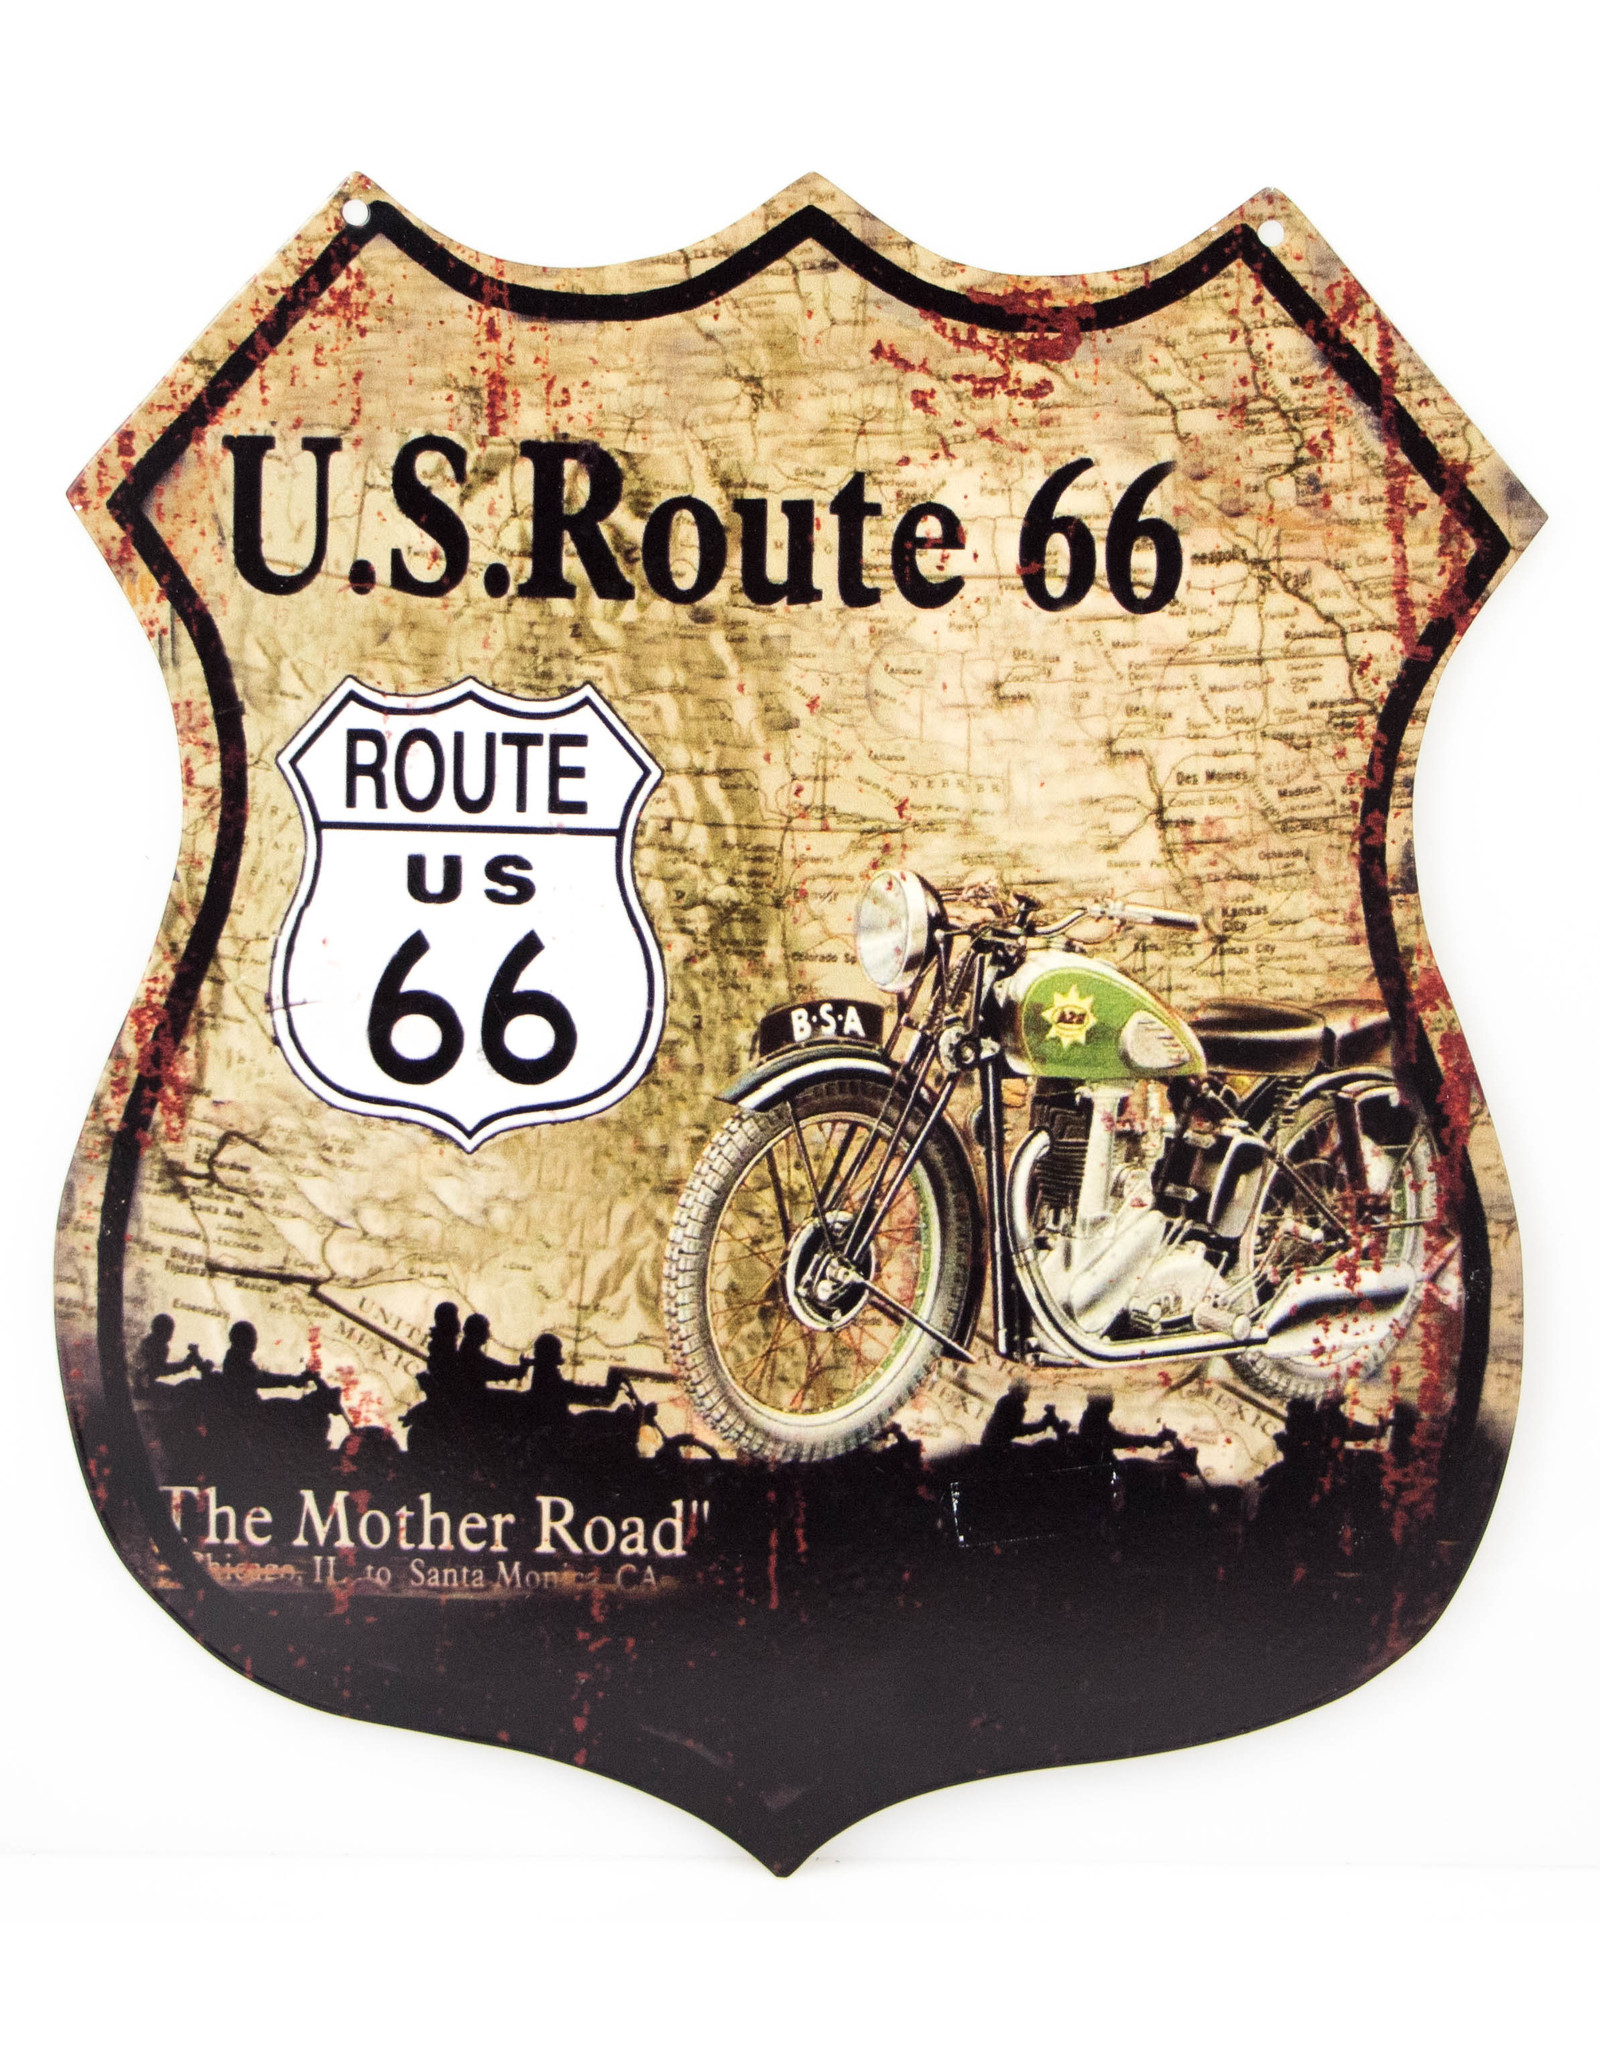 Route 66 Shield with green moto